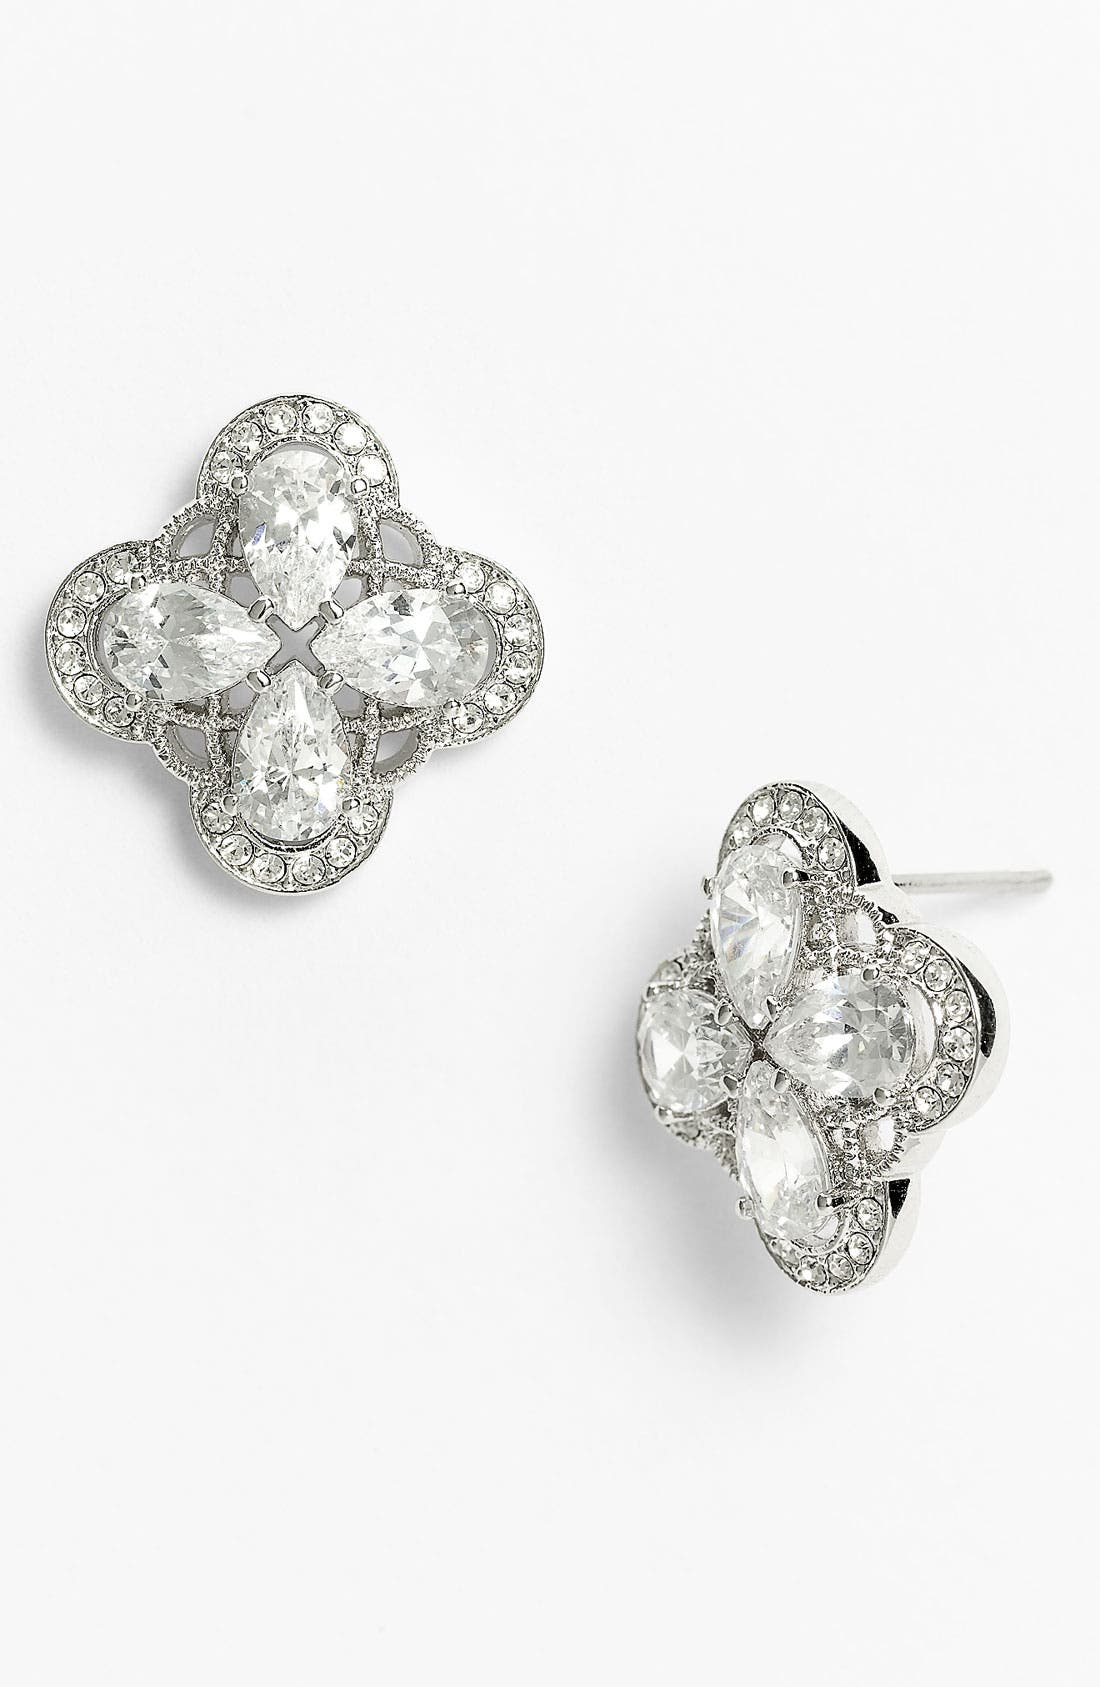 Main Image - Nadri 'Ariel' Button Stud Earrings (Nordstrom Exclusive)